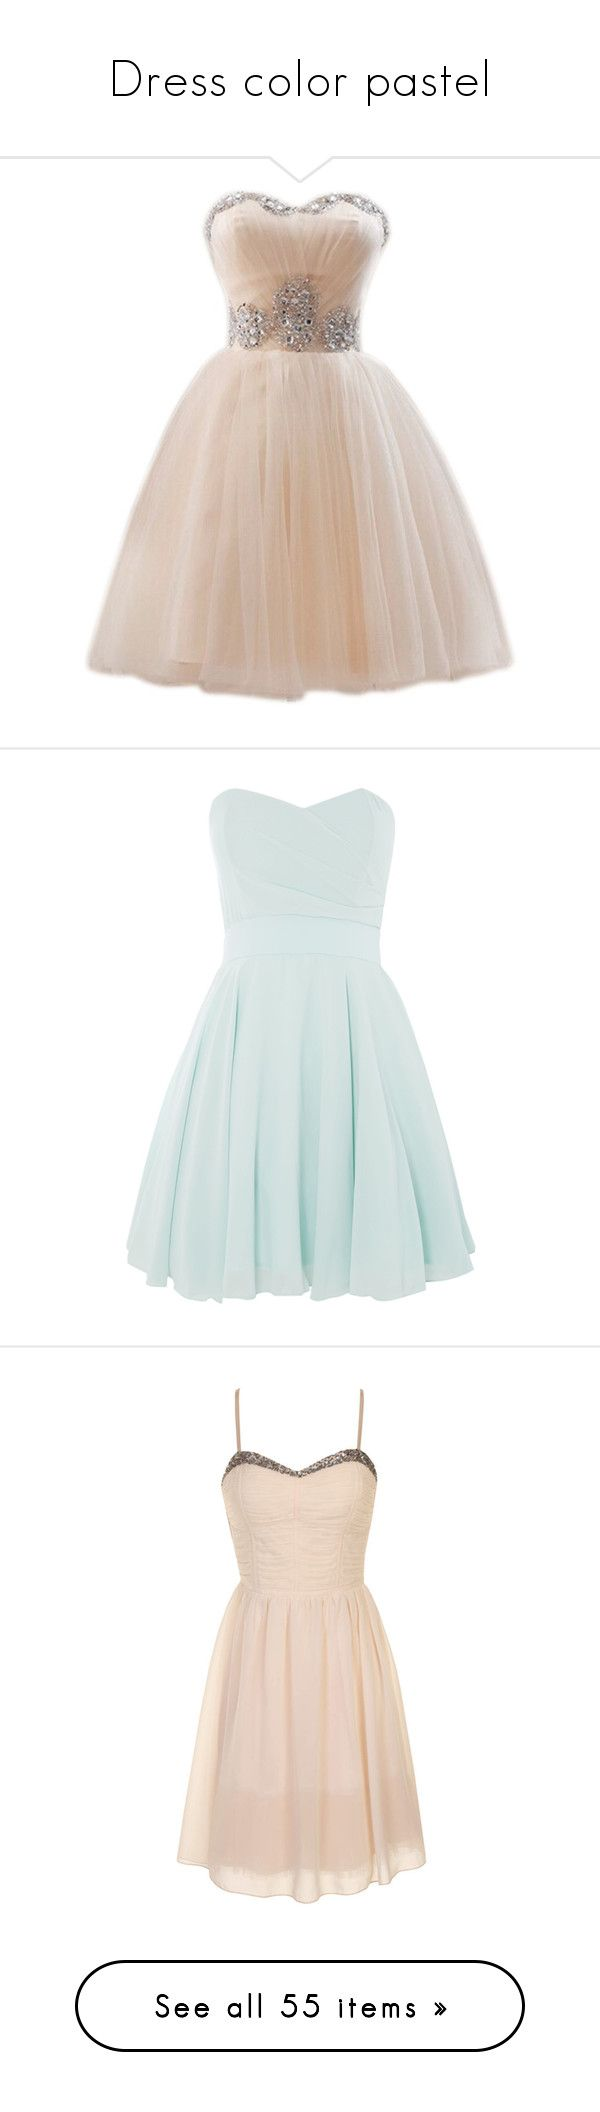 """""""Dress color pastel"""" by juulyh ❤ liked on Polyvore featuring dresses, short dresses, cocktail prom dress, short pink dress, sweetheart neckline prom dress, mini dress, pink prom dresses, vestidos, robes and clearance"""